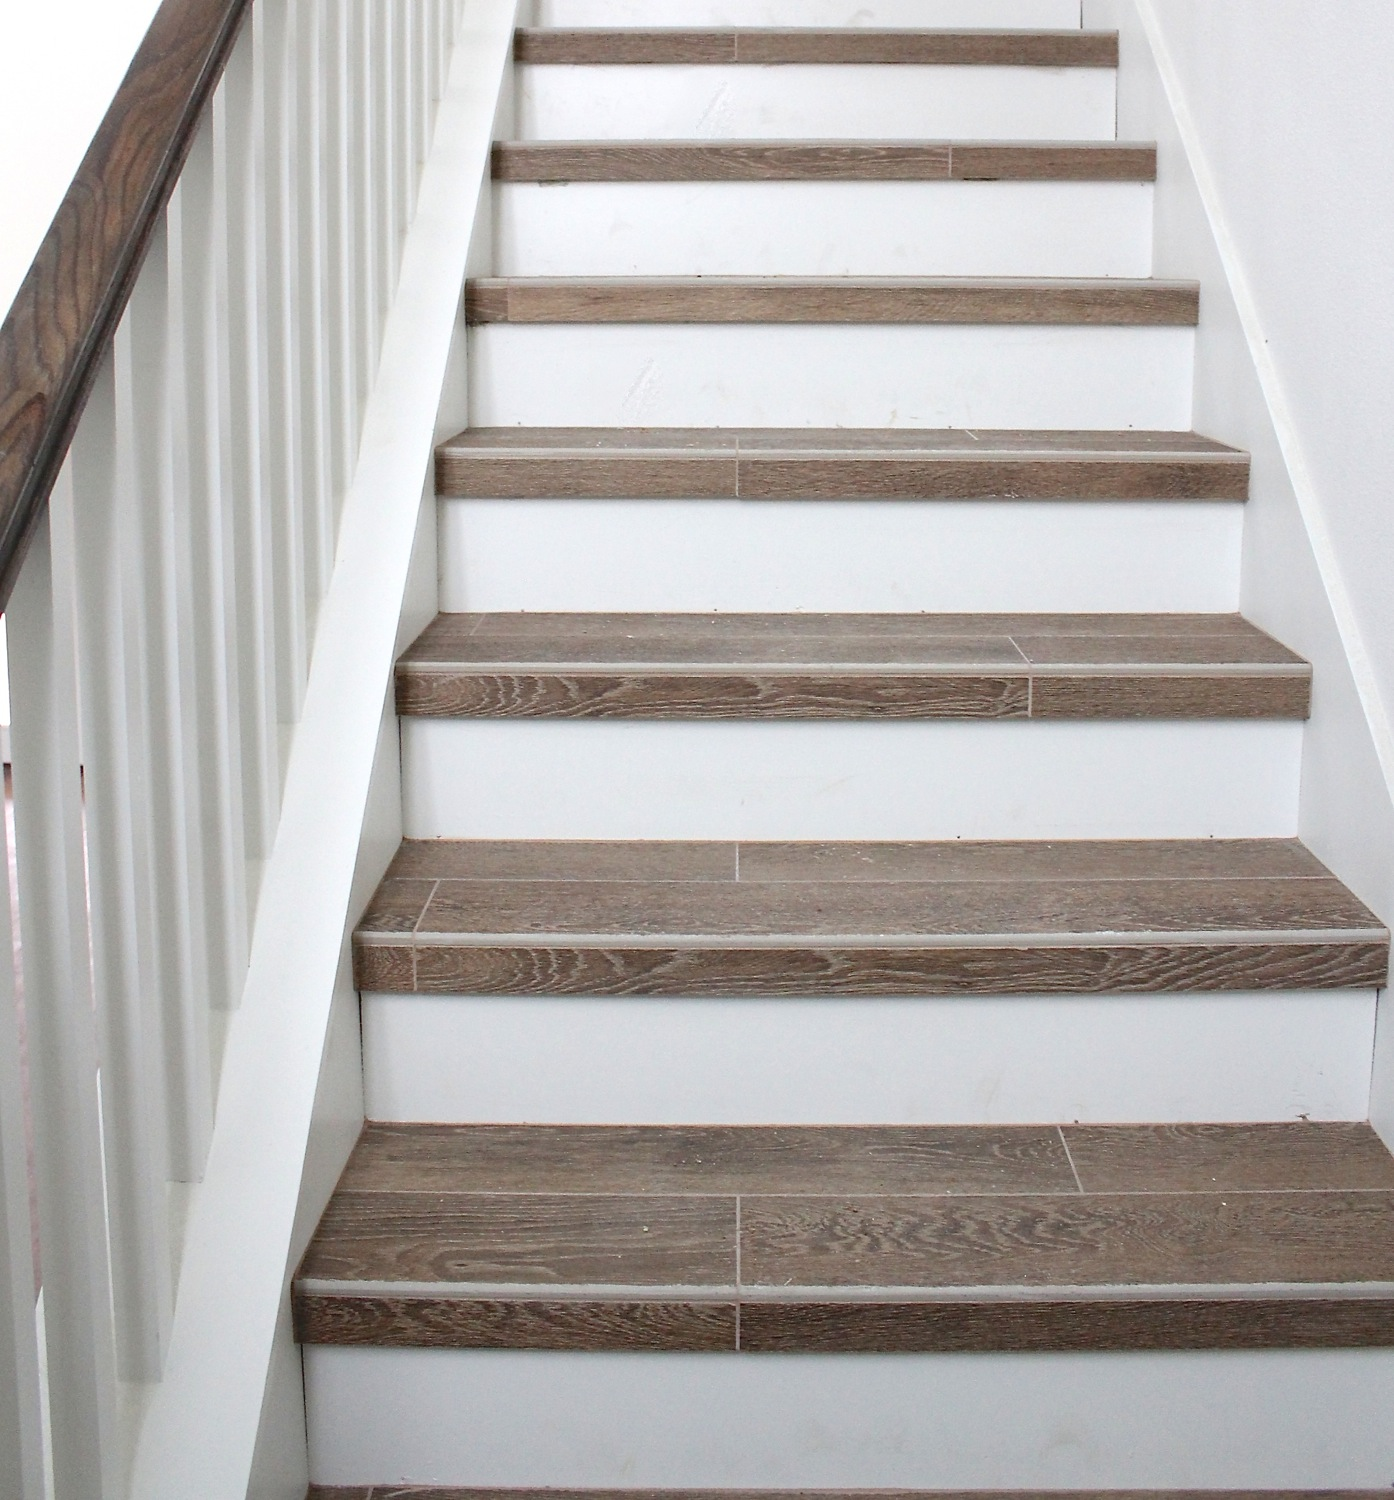 Building A New Home Tile Flooring Countertops And | Carpet Tiles For Steps